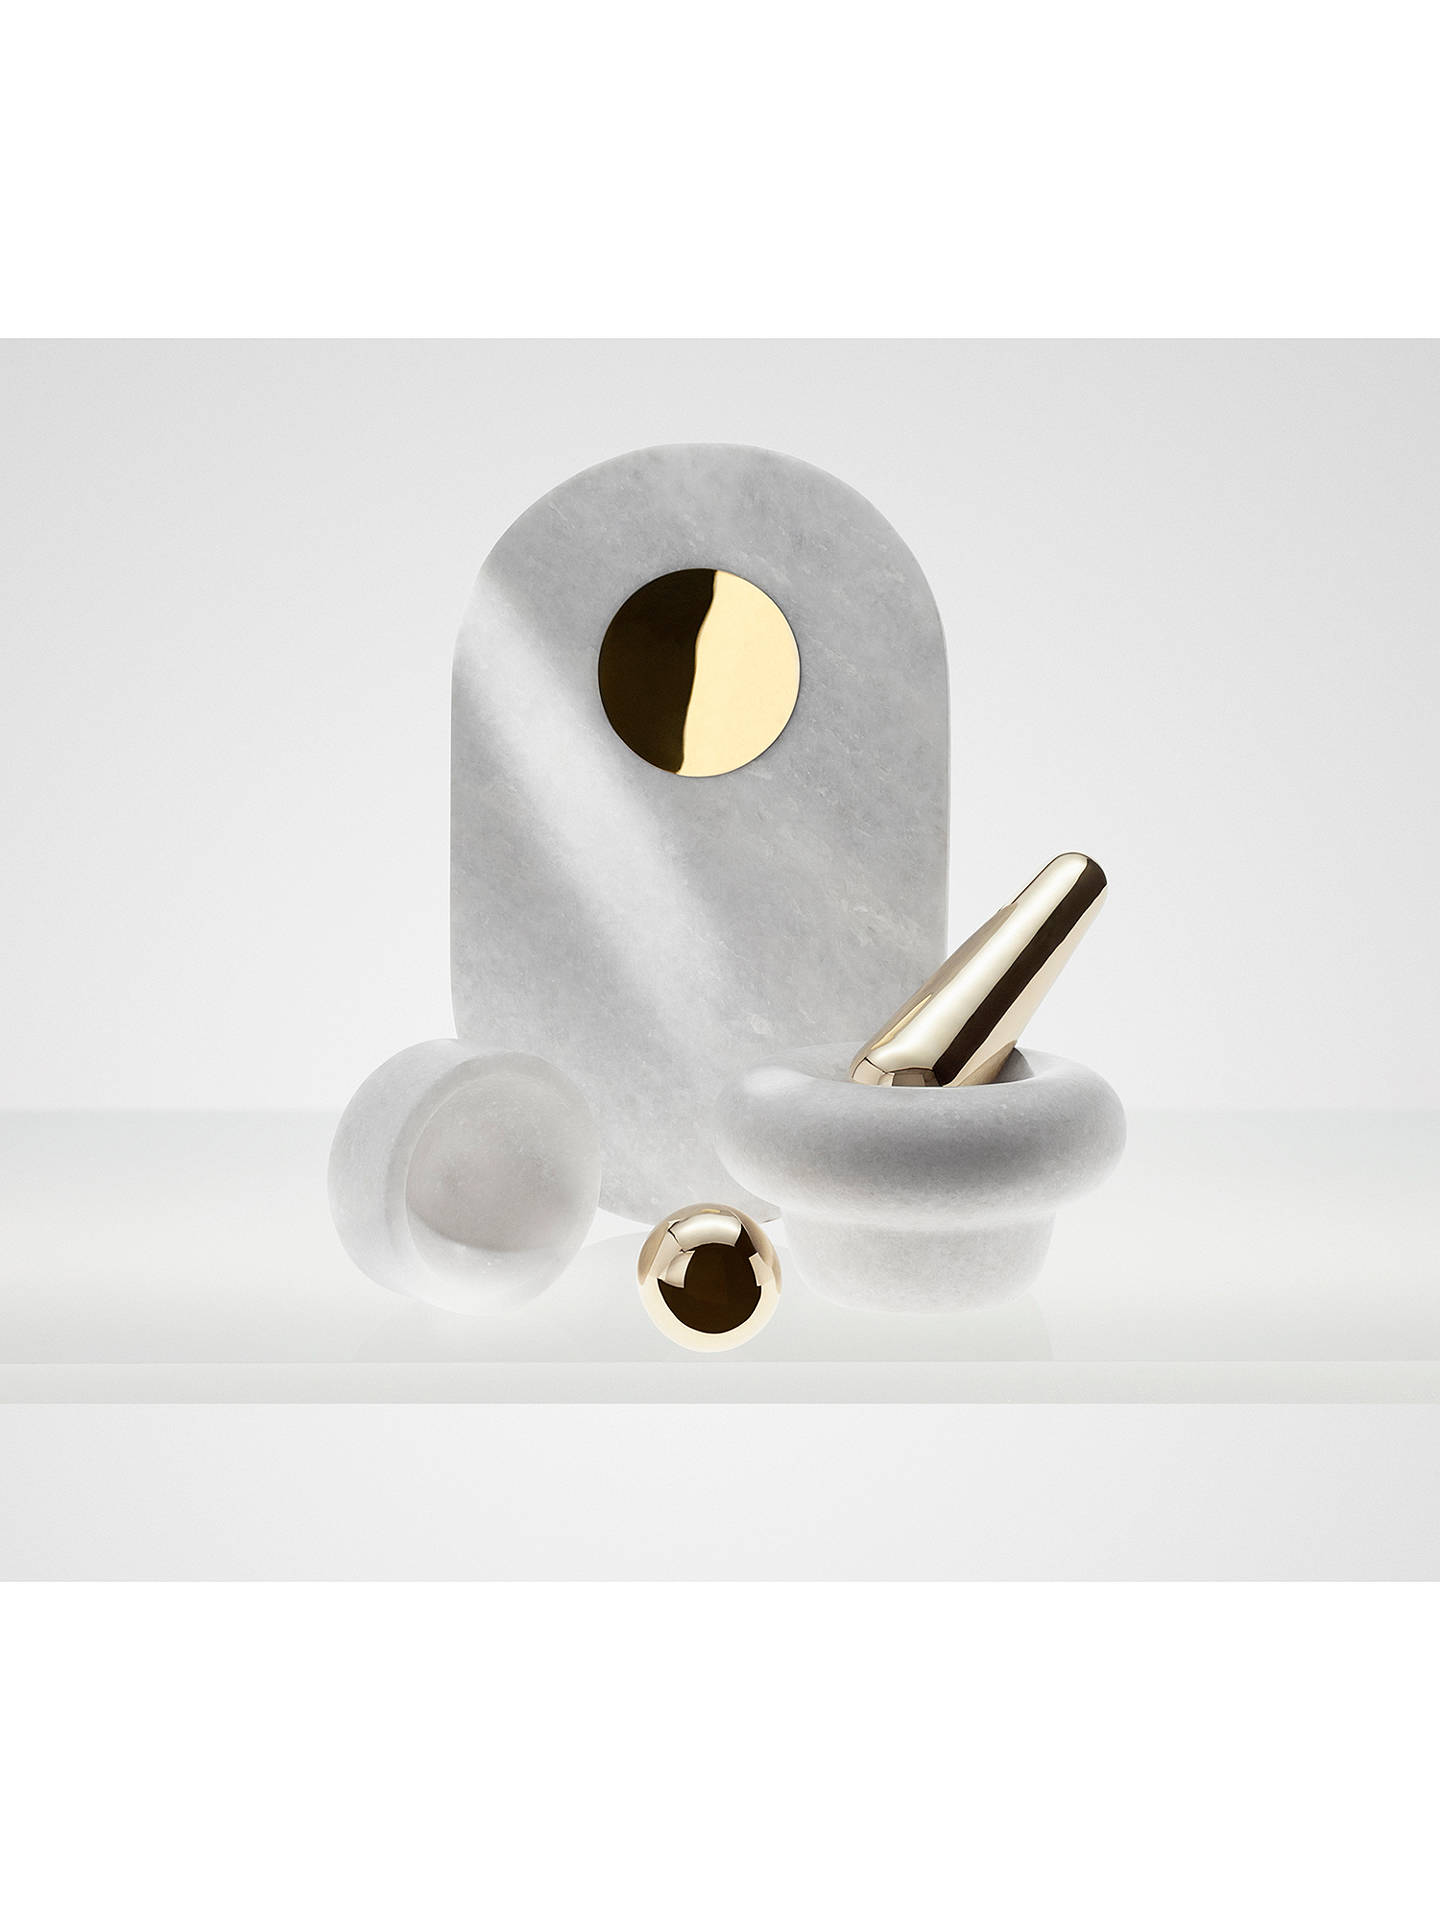 BuyTom Dixon Stone Pestle and Mortar, White and Gold Online at johnlewis.com